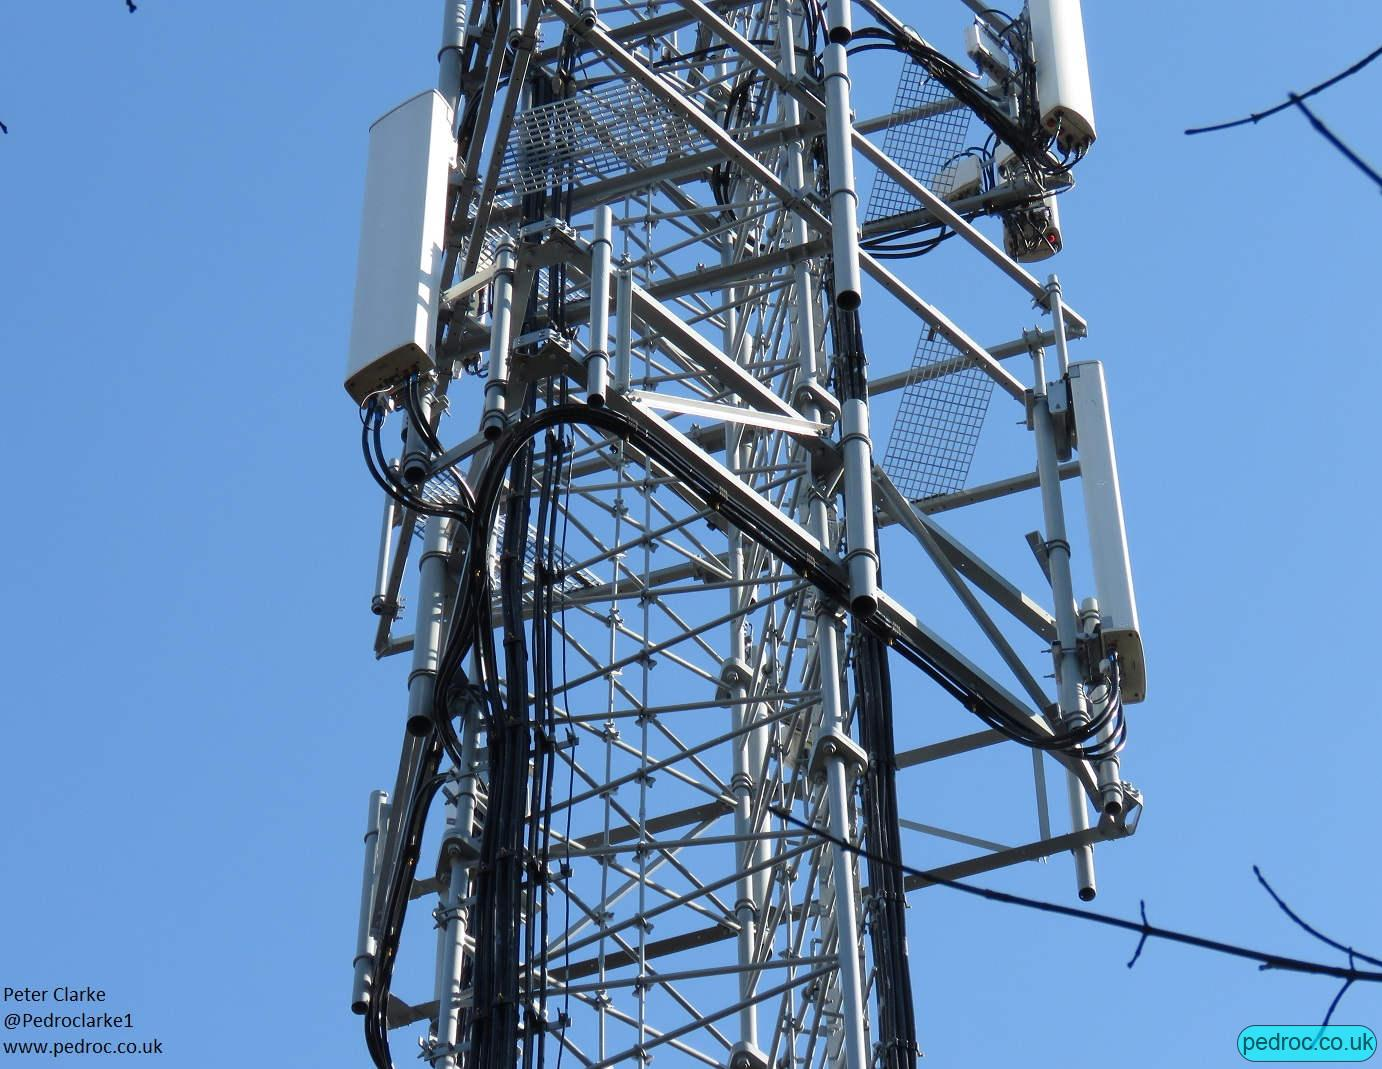 Sheringham Woods lower section with dual band Kathrein antennas for O2/VF